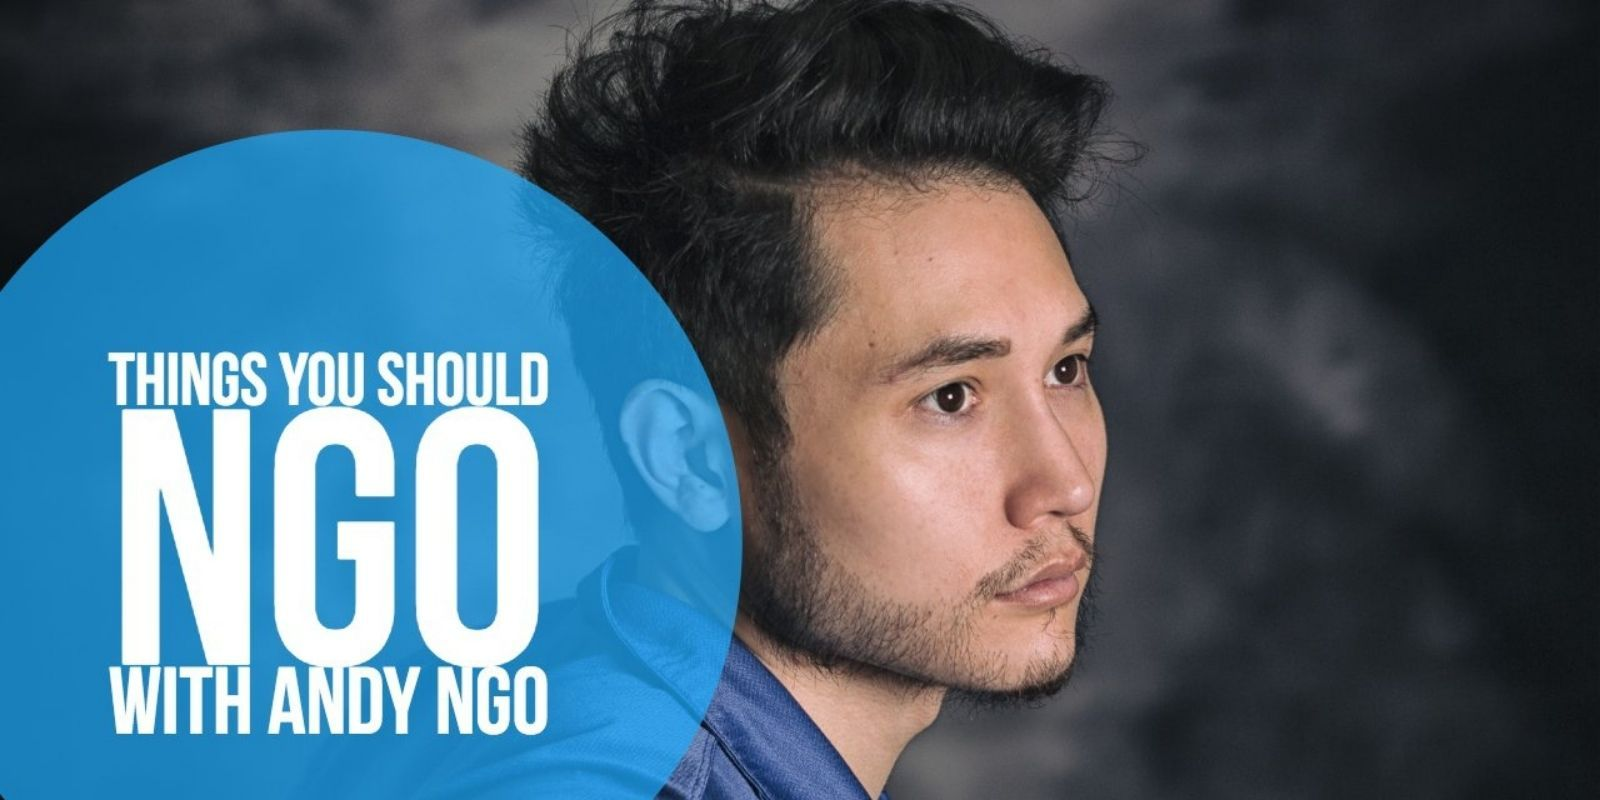 BREAKING: Andy Ngo's podcast permanently banned from SoundCloud